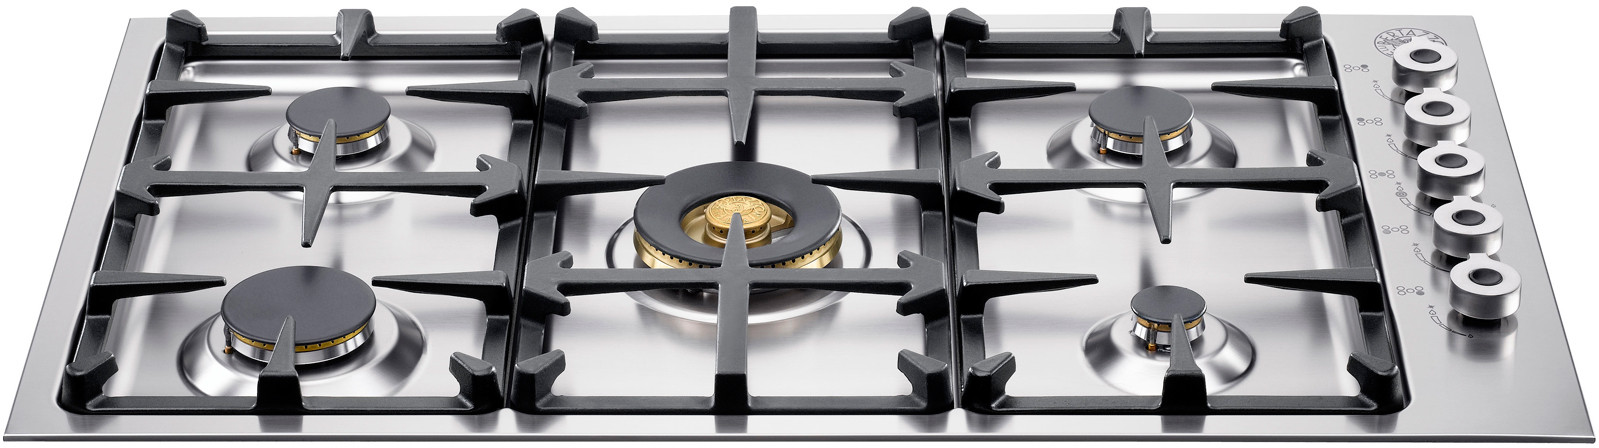 Bertazzoni Professional Series QB36500X 36 Inch Gas Cooktop with 5 Sealed Burners, 18,000 BTU Brass Power Burner, Continuous Grates, Electronic Ignition and Low Profile Borders: Natural Gas